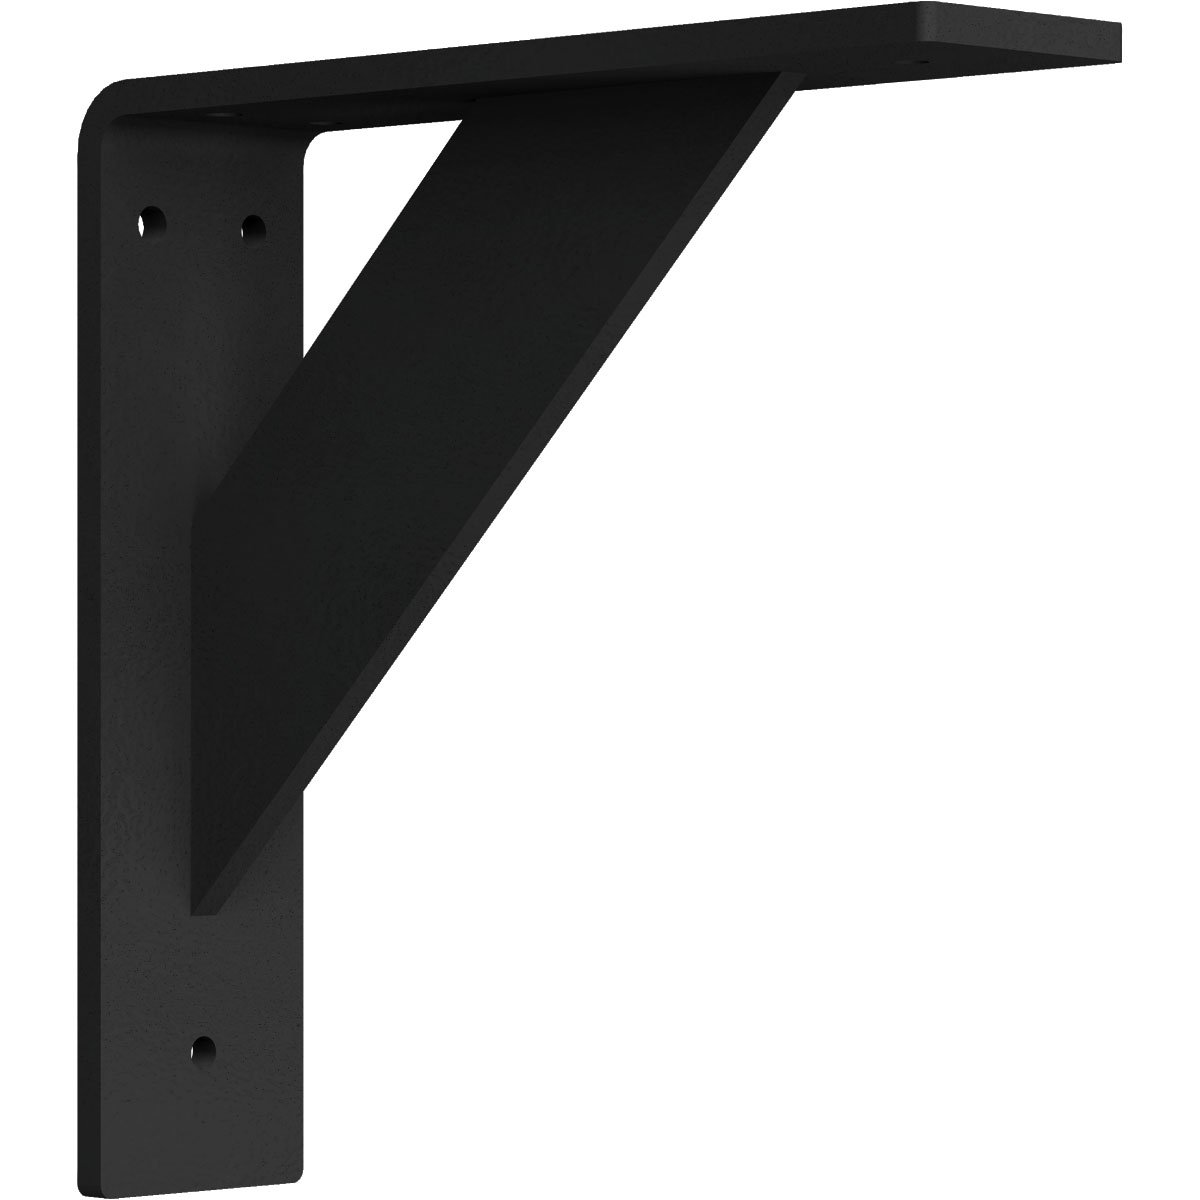 Ekena Millwork BKTM02X08X08TRHBL 2''W x 8''D x 8''H Traditional Steel Bracket, Hammered Black